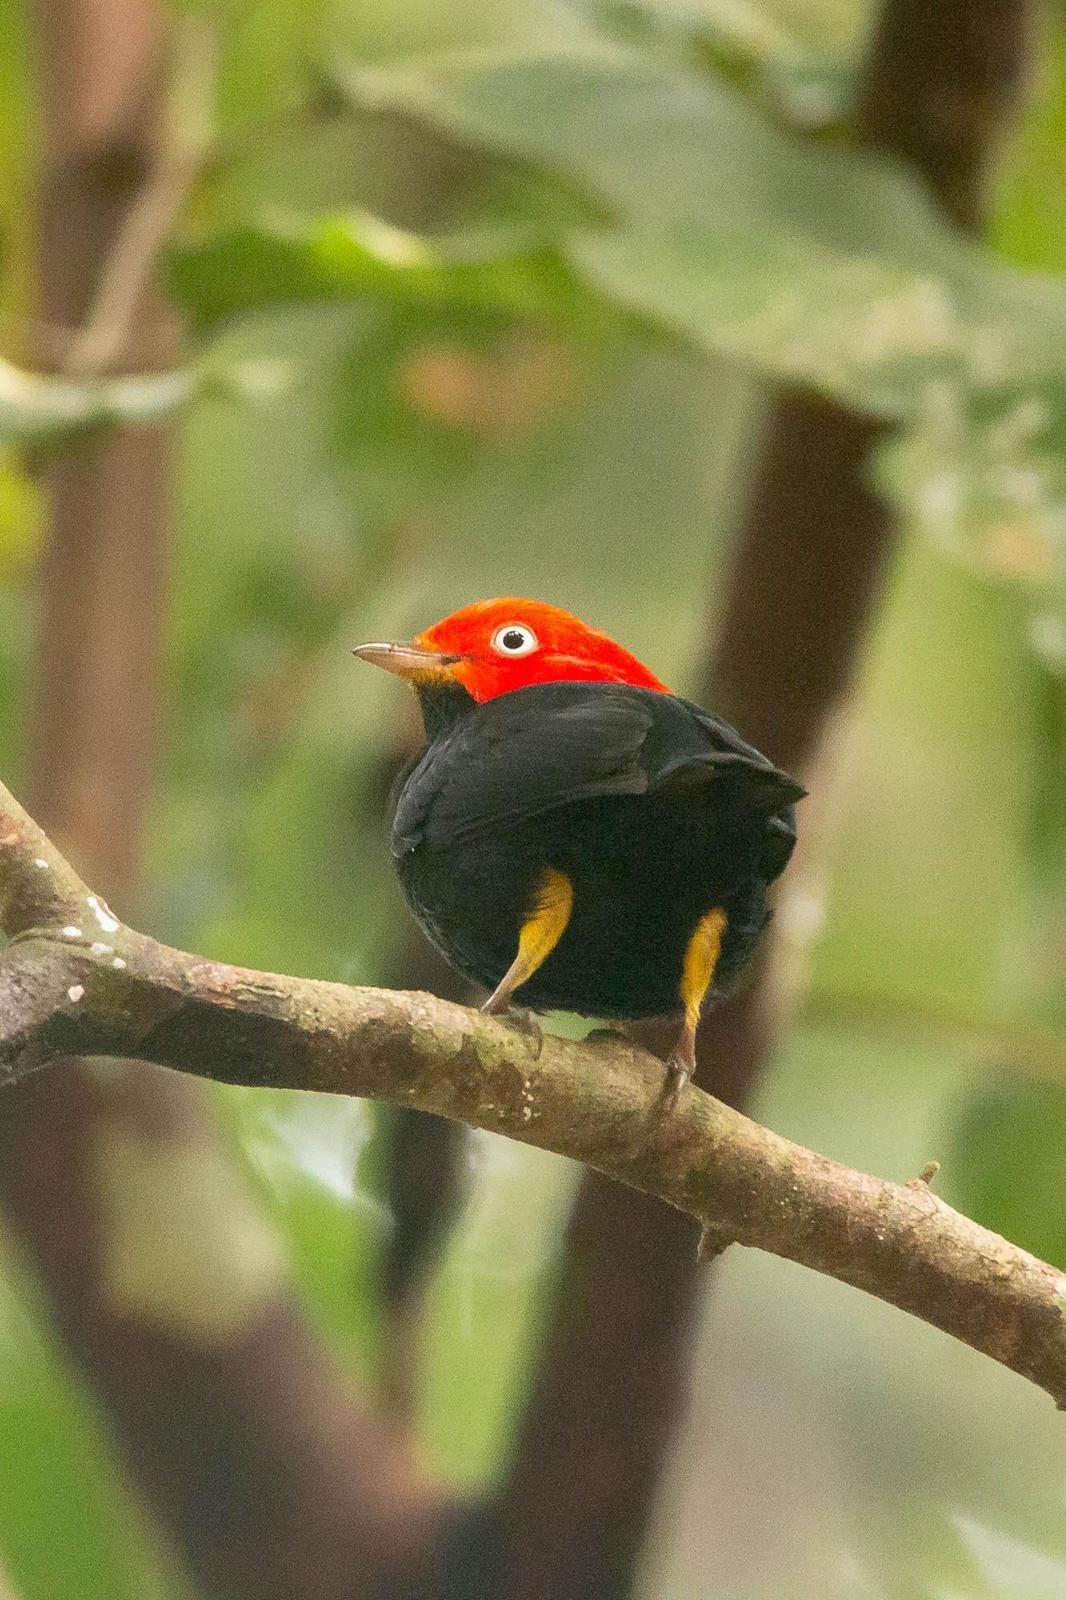 Red-capped Manakin Photo by Marie-France Rivard